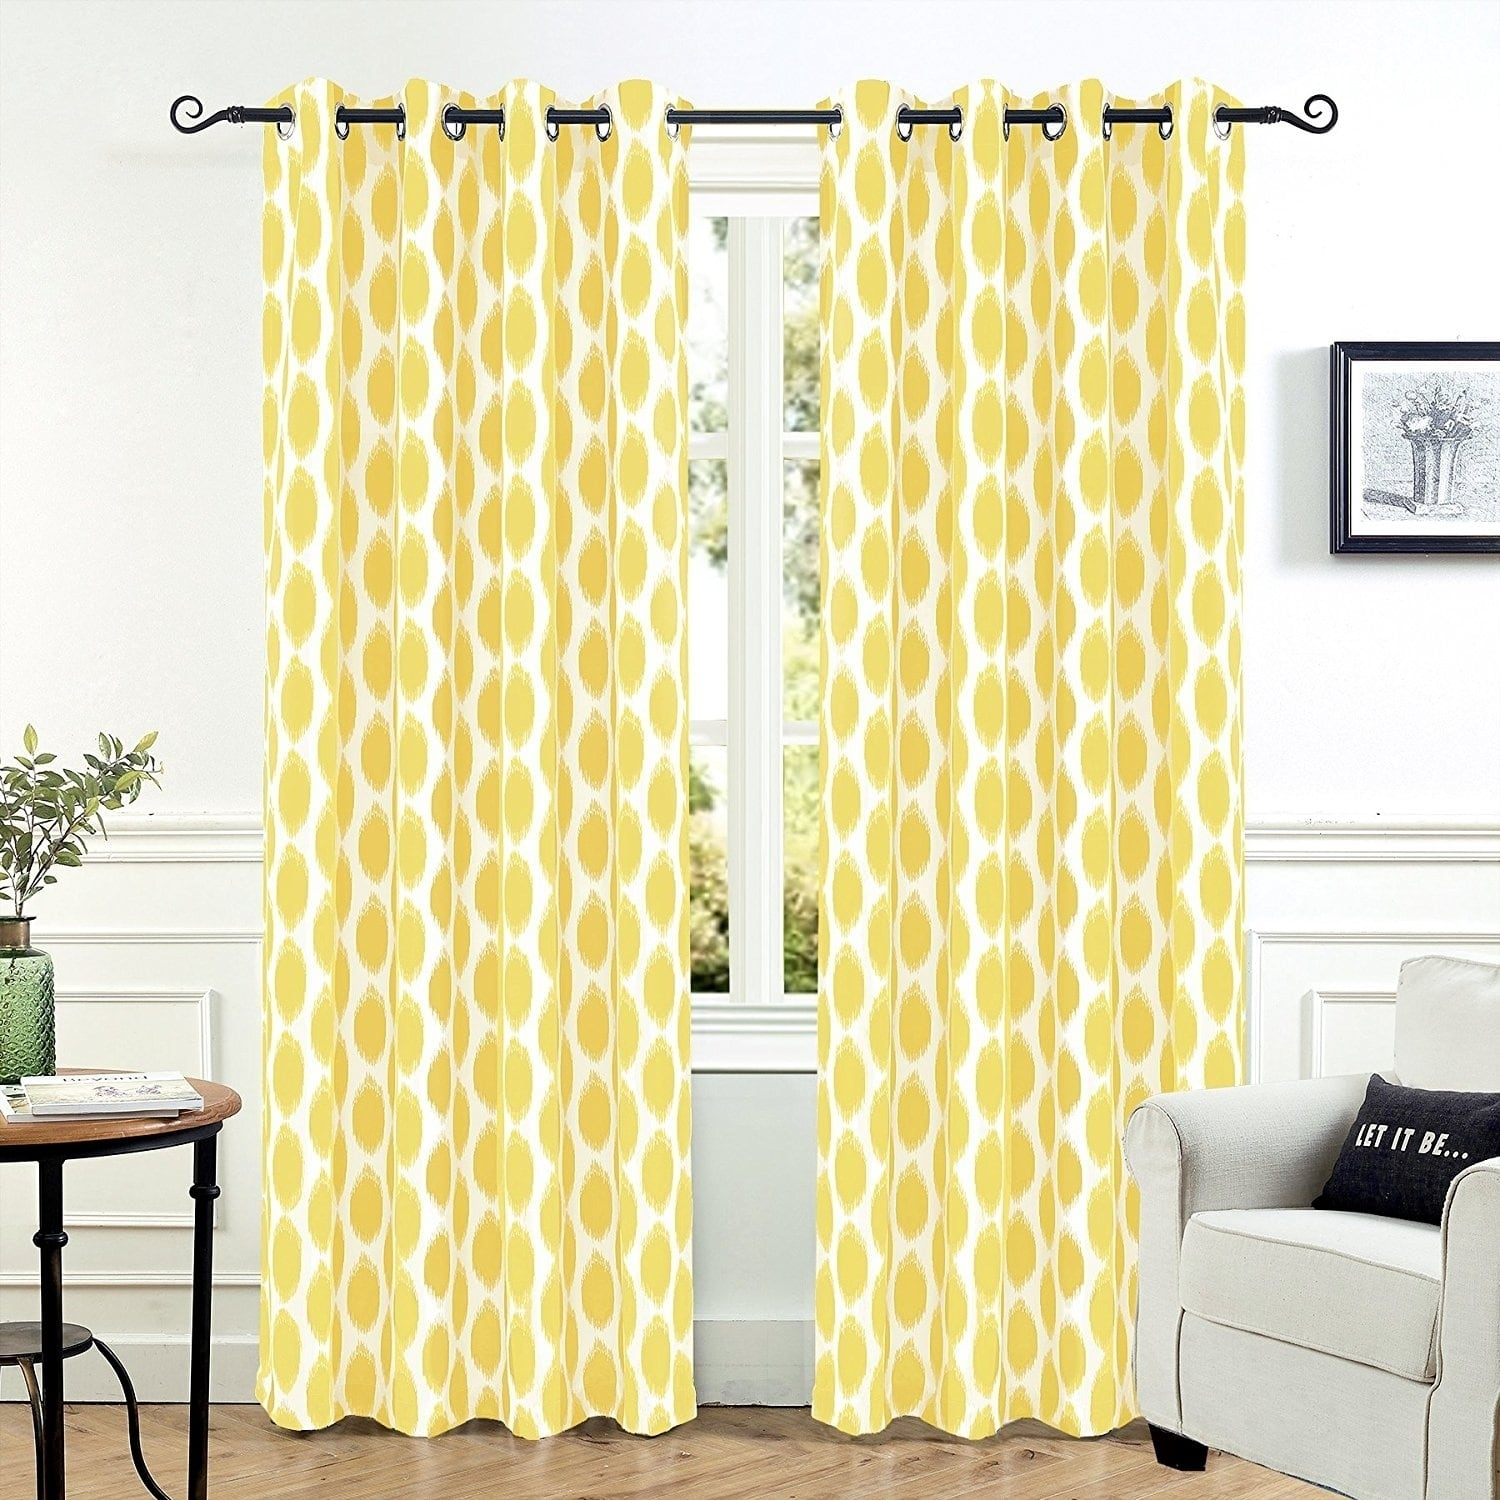 Driftaway Allen Ikat Polka Dot Room Darkening Window Curtain Regarding Julia Striped Room Darkening Window Curtain Panel Pairs (View 9 of 20)